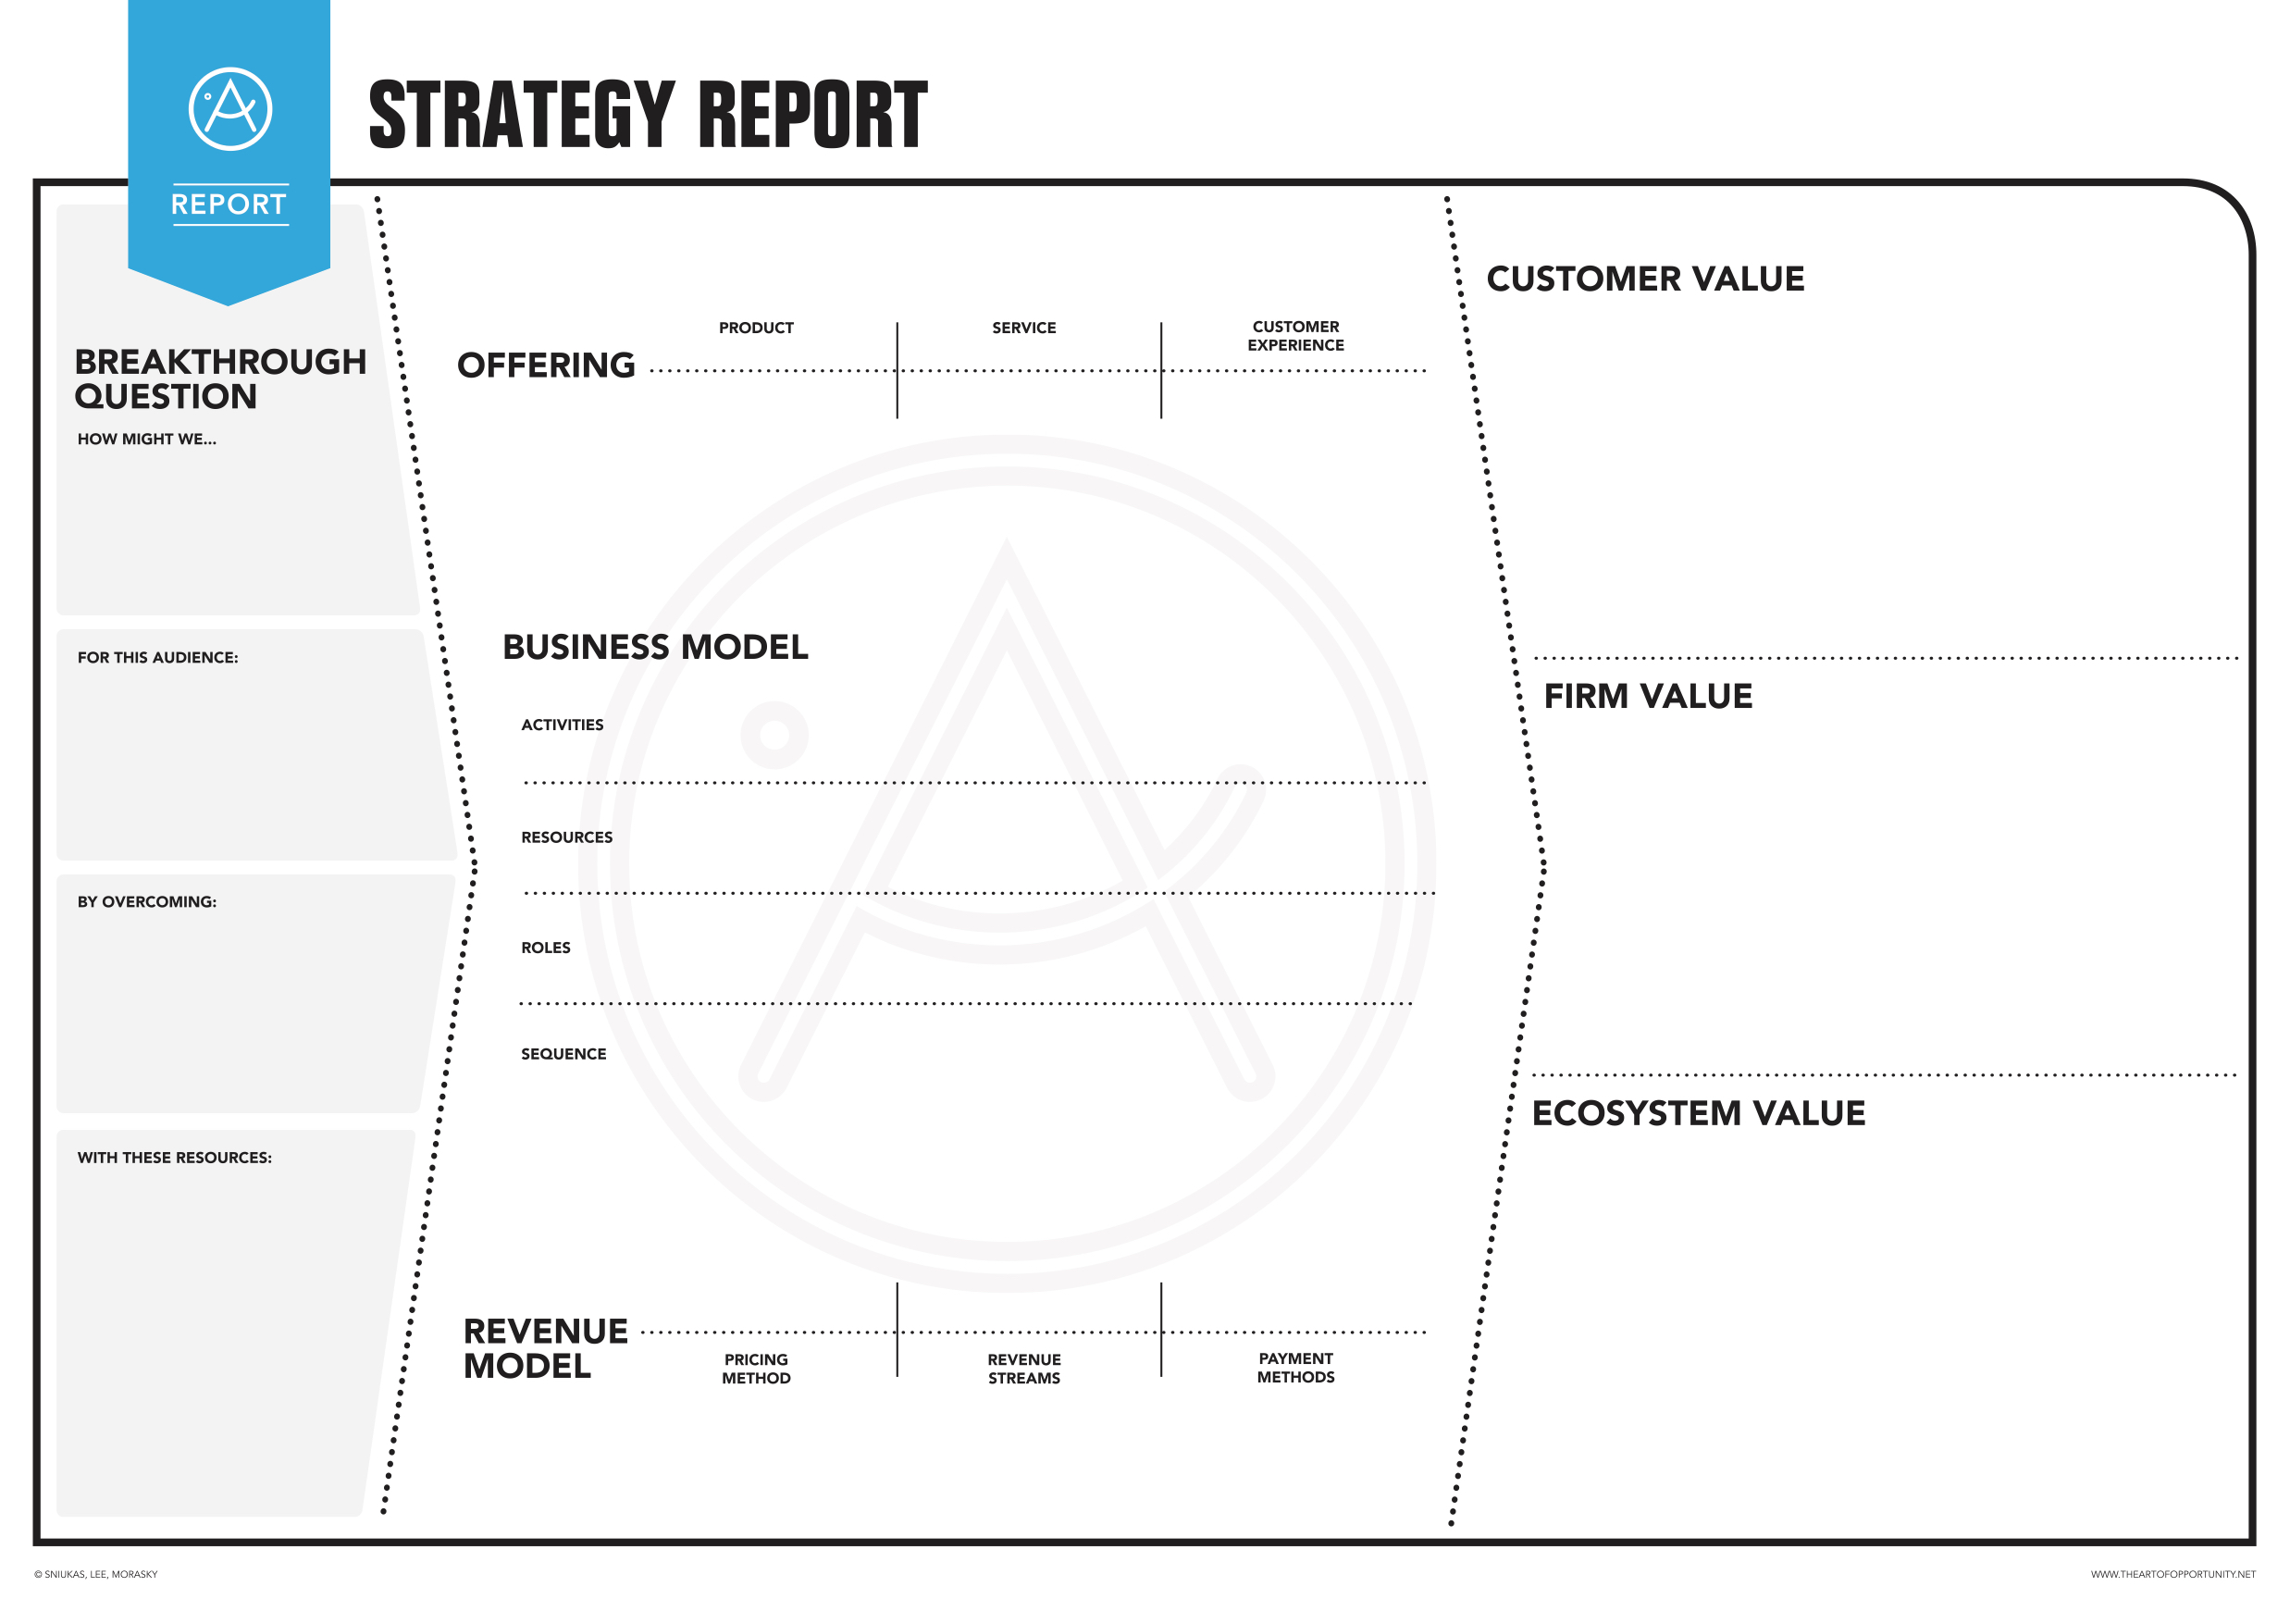 The Strategy Report